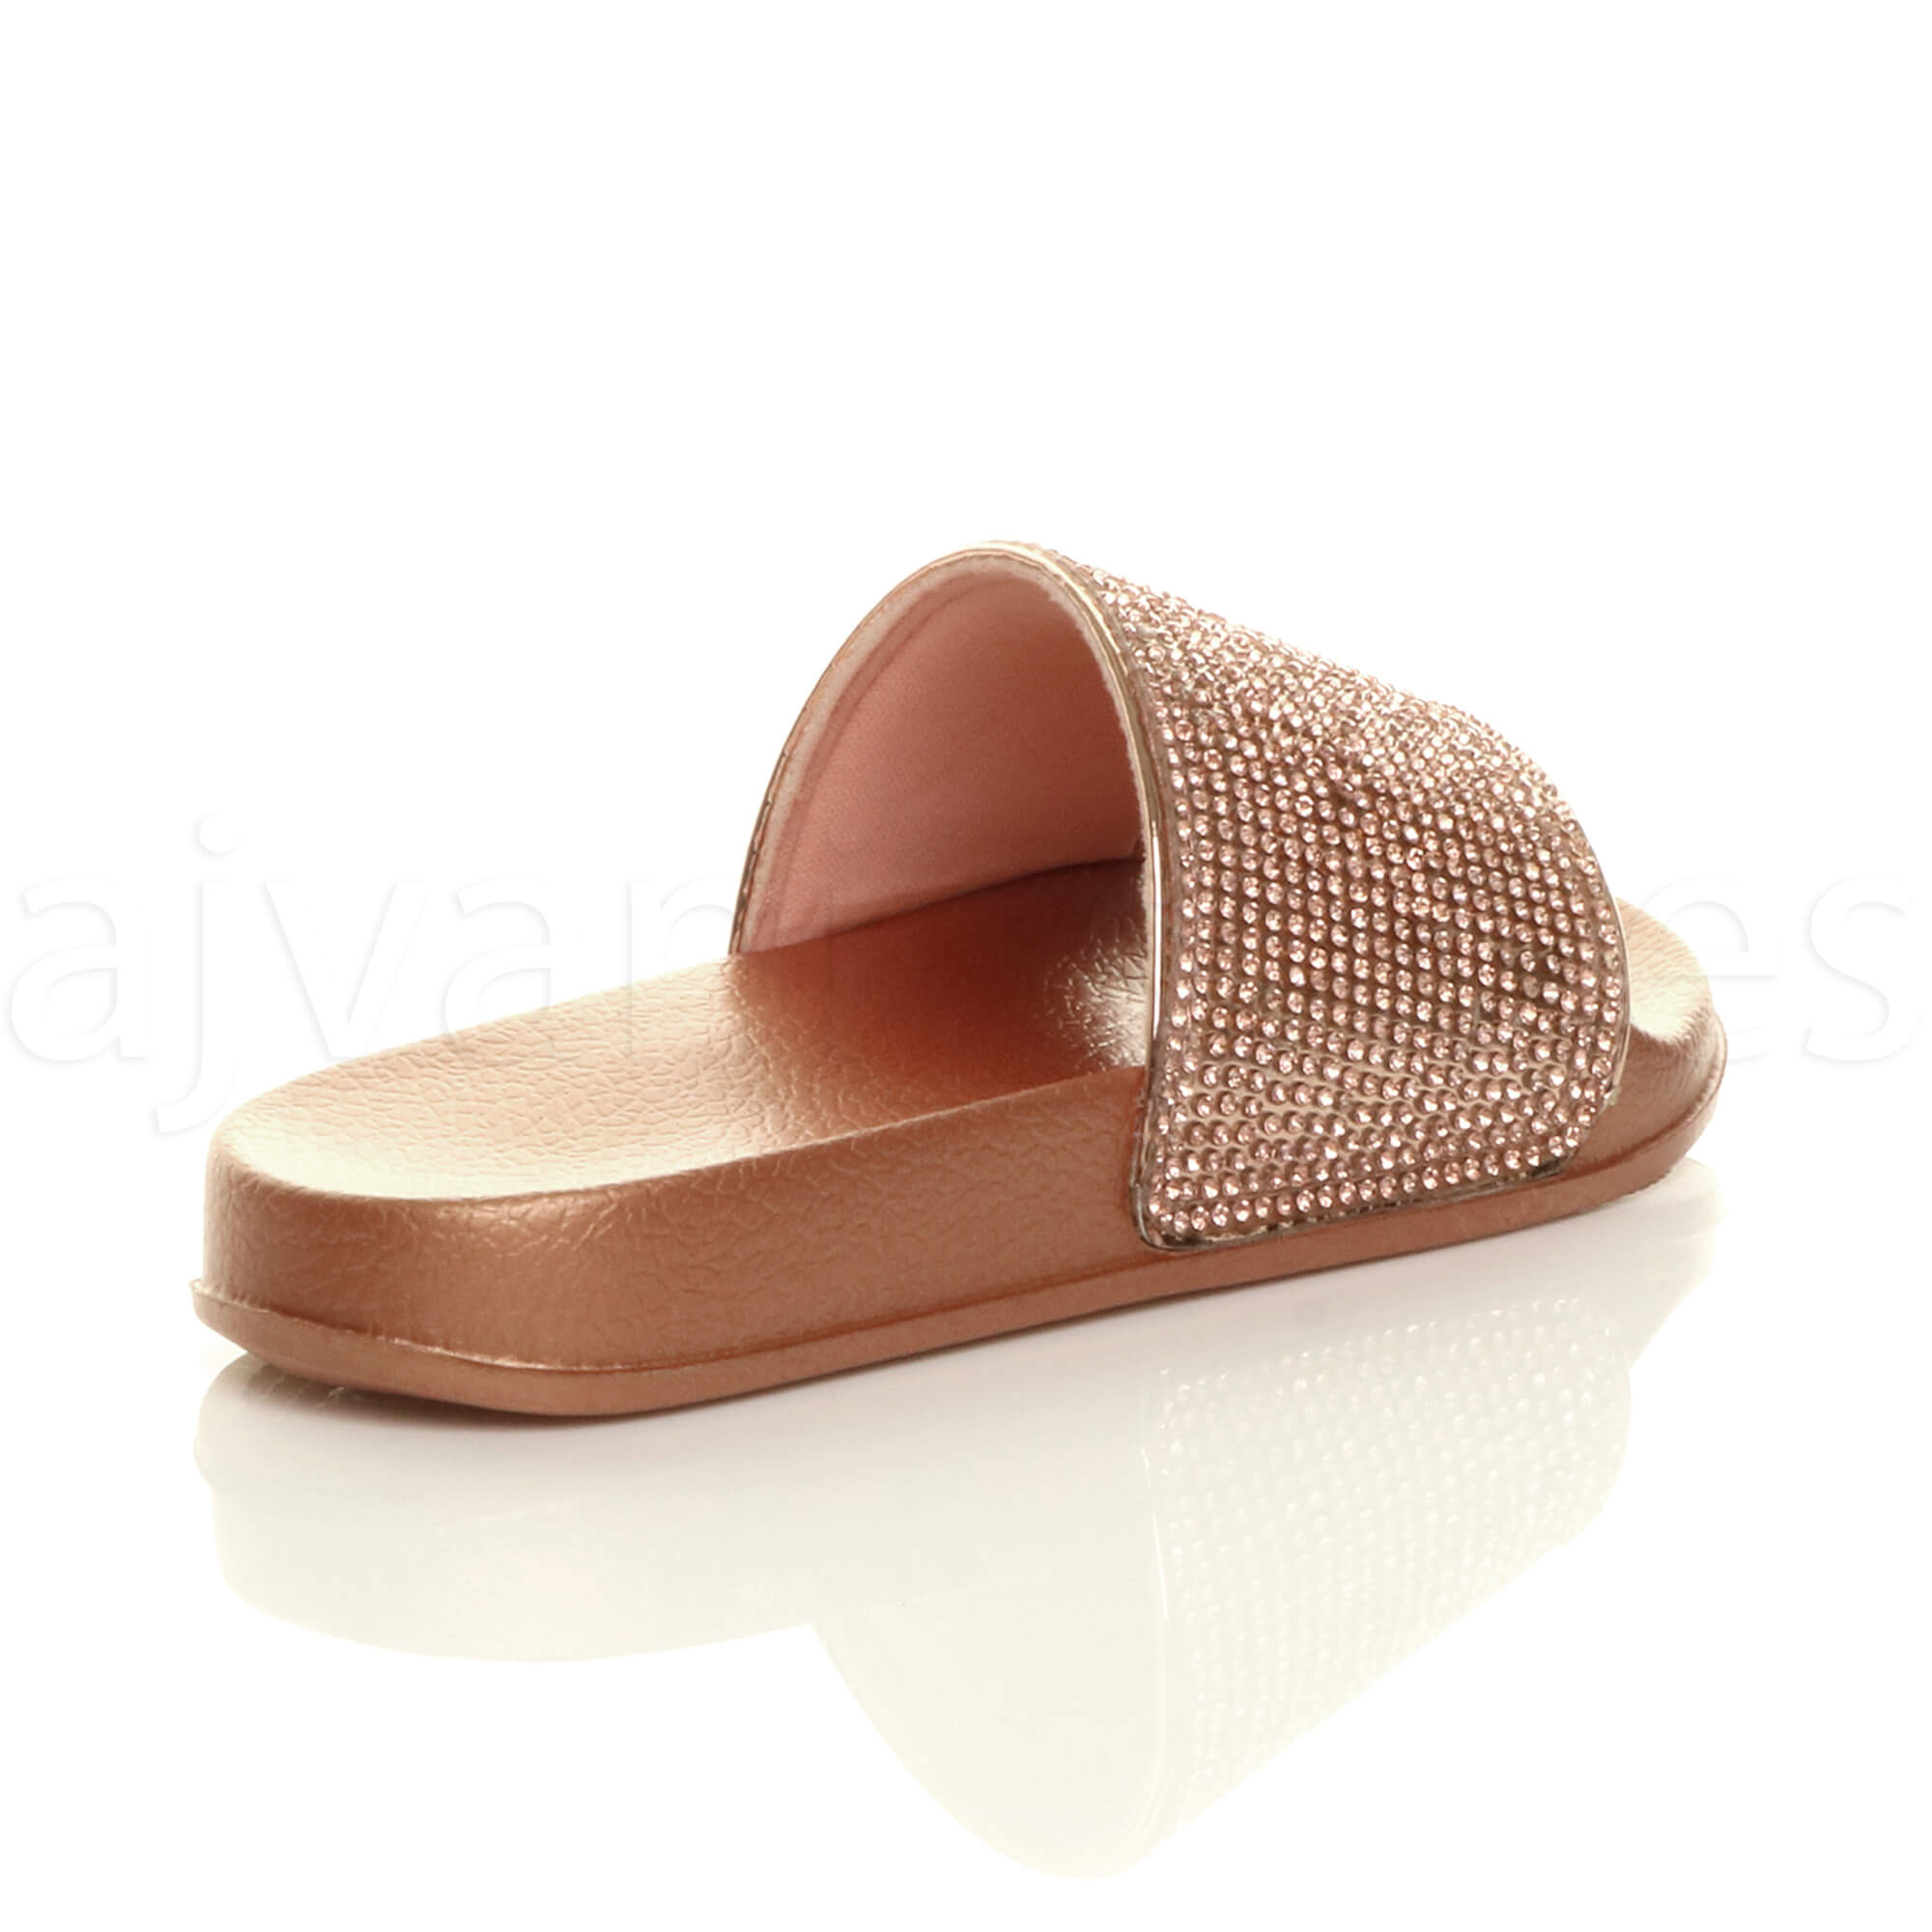 GIRLS-KIDS-CHILDRENS-FLAT-DIAMANTE-SPARKLY-SLIDERS-SANDALS-FLIP-FLOPS-SIZE